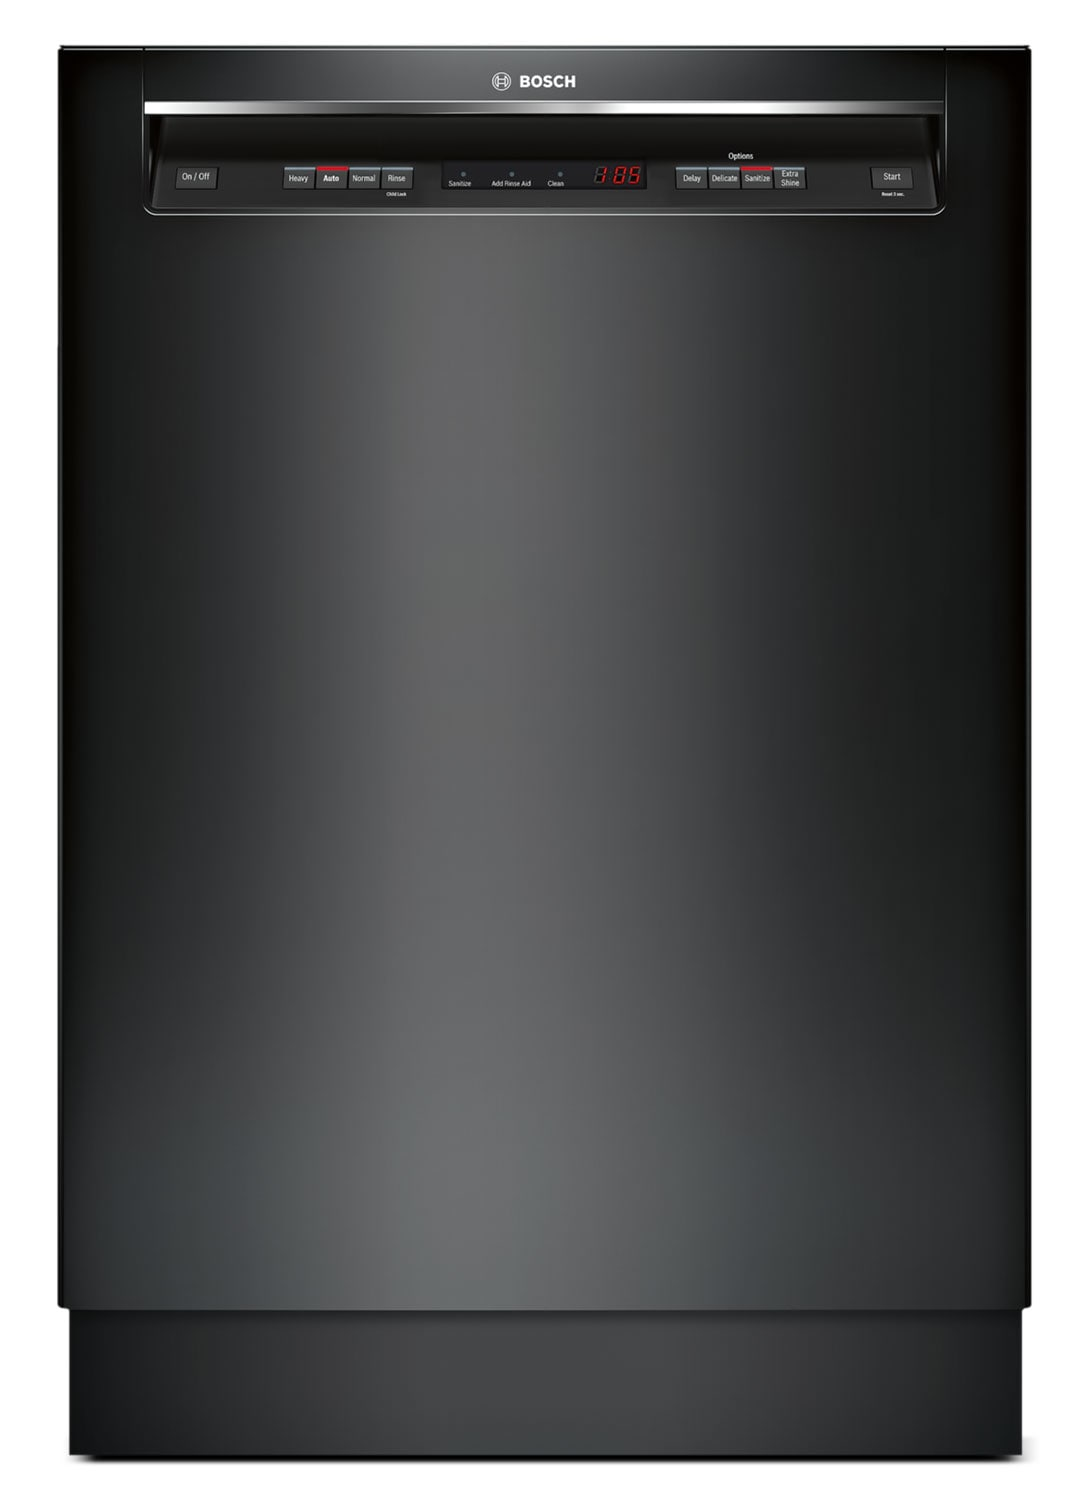 "Clean-Up - Bosch Black 24"" Dishwasher - SHE53T56UC"